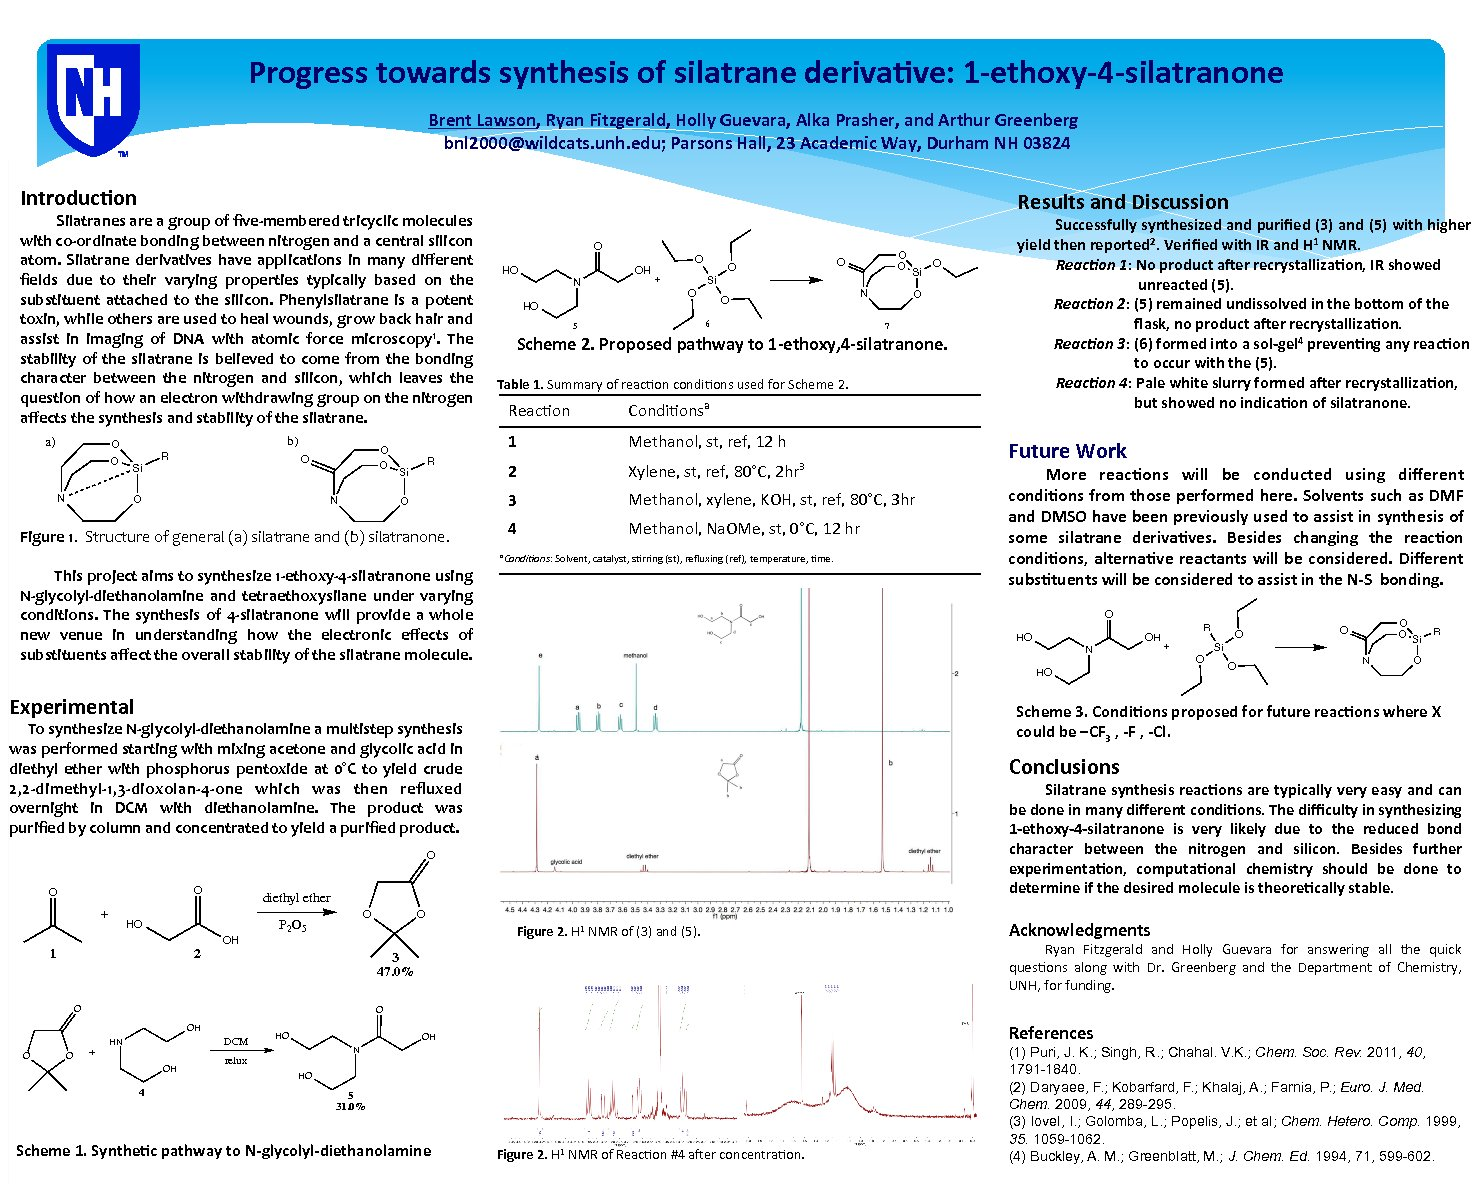 Progress Towards Synthesis Of Silatrane Derivative: 1-Ethoxy-4-Silatrane by bnl2000